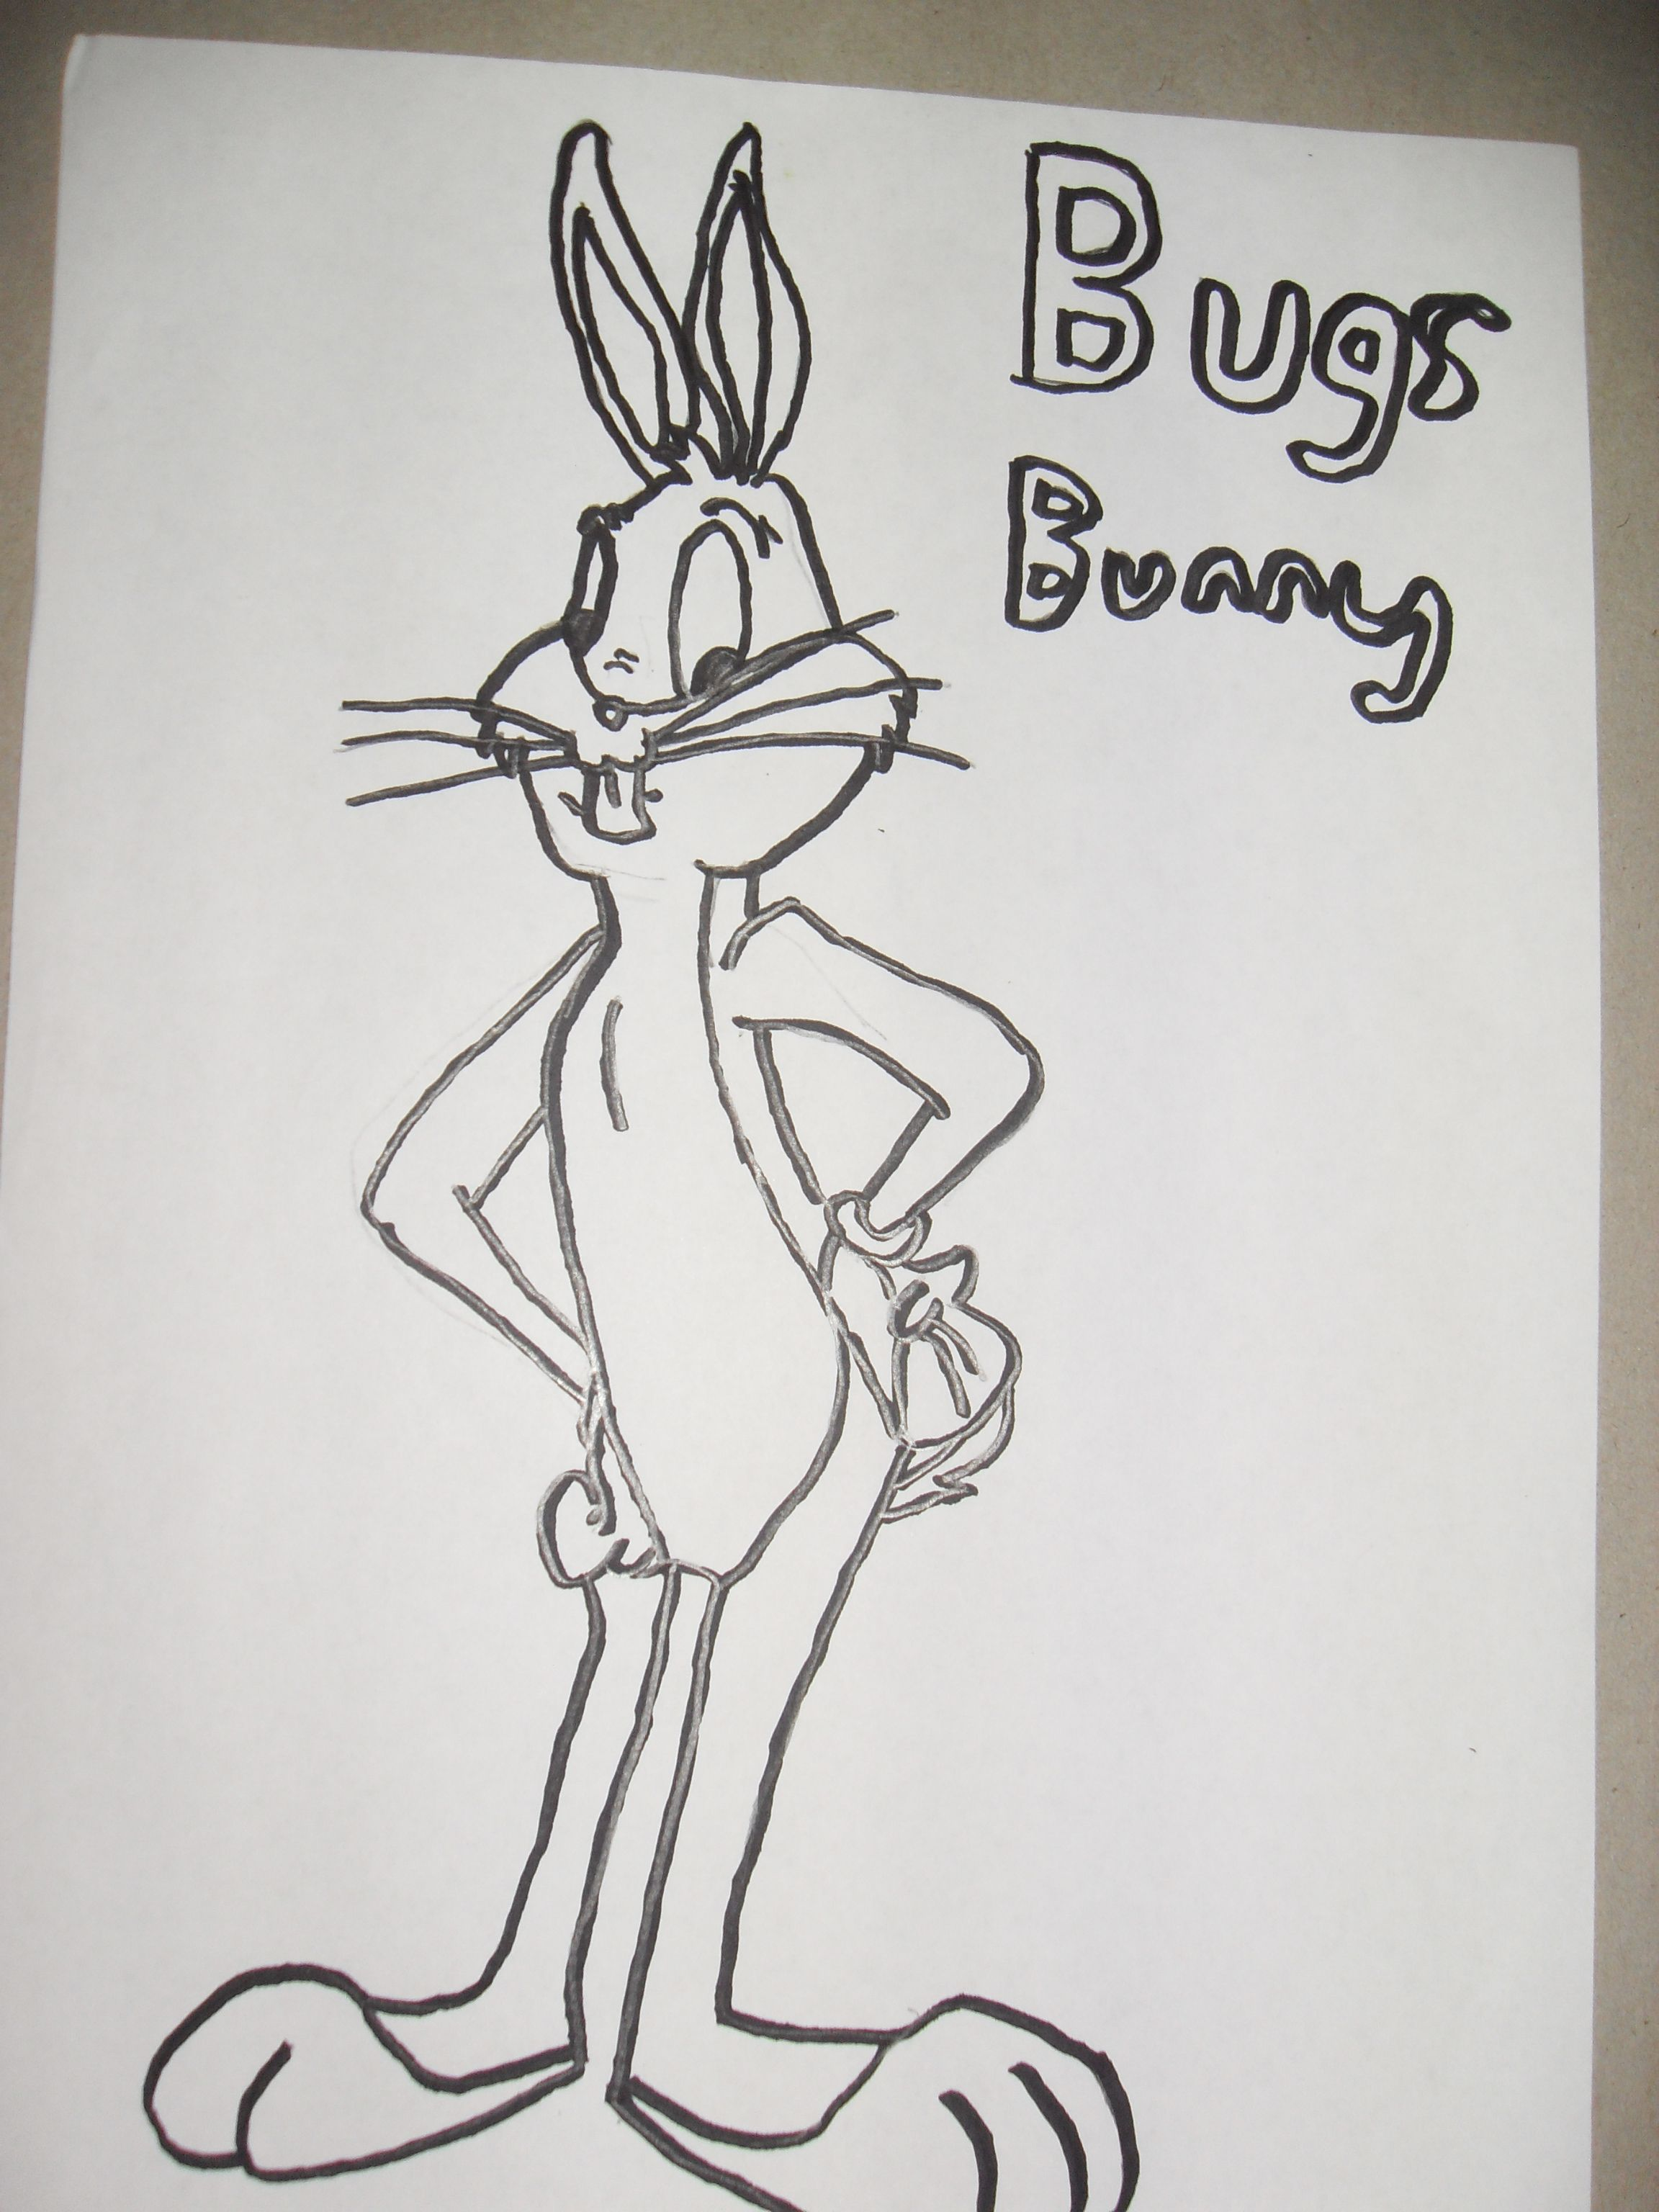 Bugs Bunny Tattoos Bugs bunny drawing | Bugs Bunny Tattoo Drawings ...